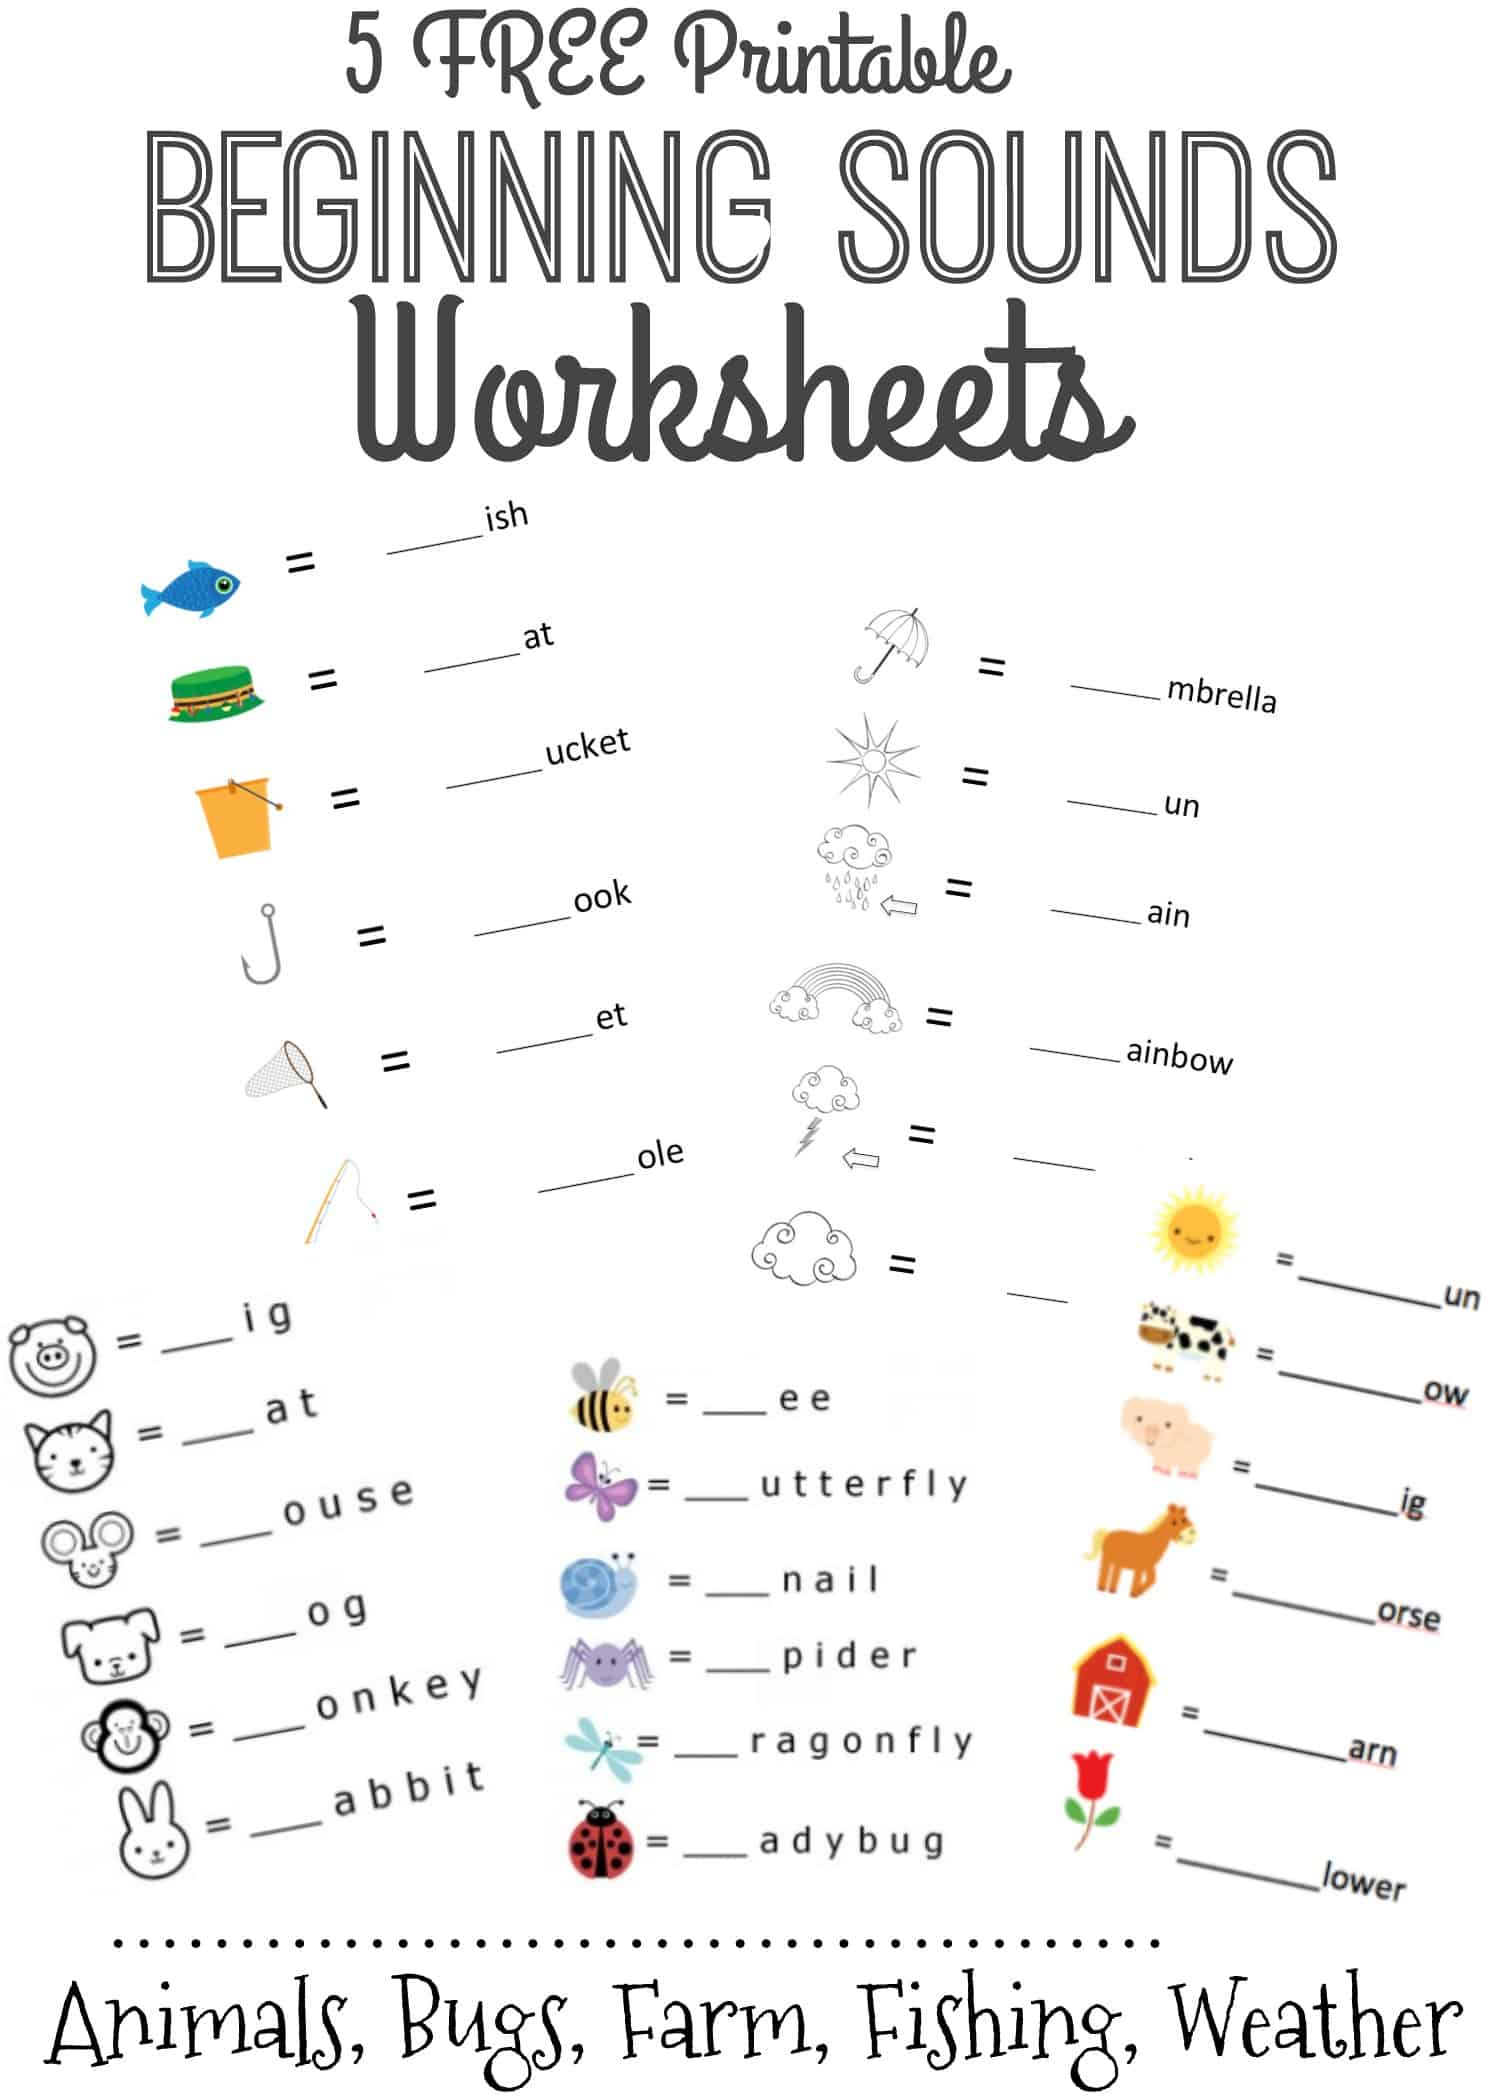 Beginning Sounds Letter Worksheets For Early Learners throughout Letter A Worksheets Free Printables